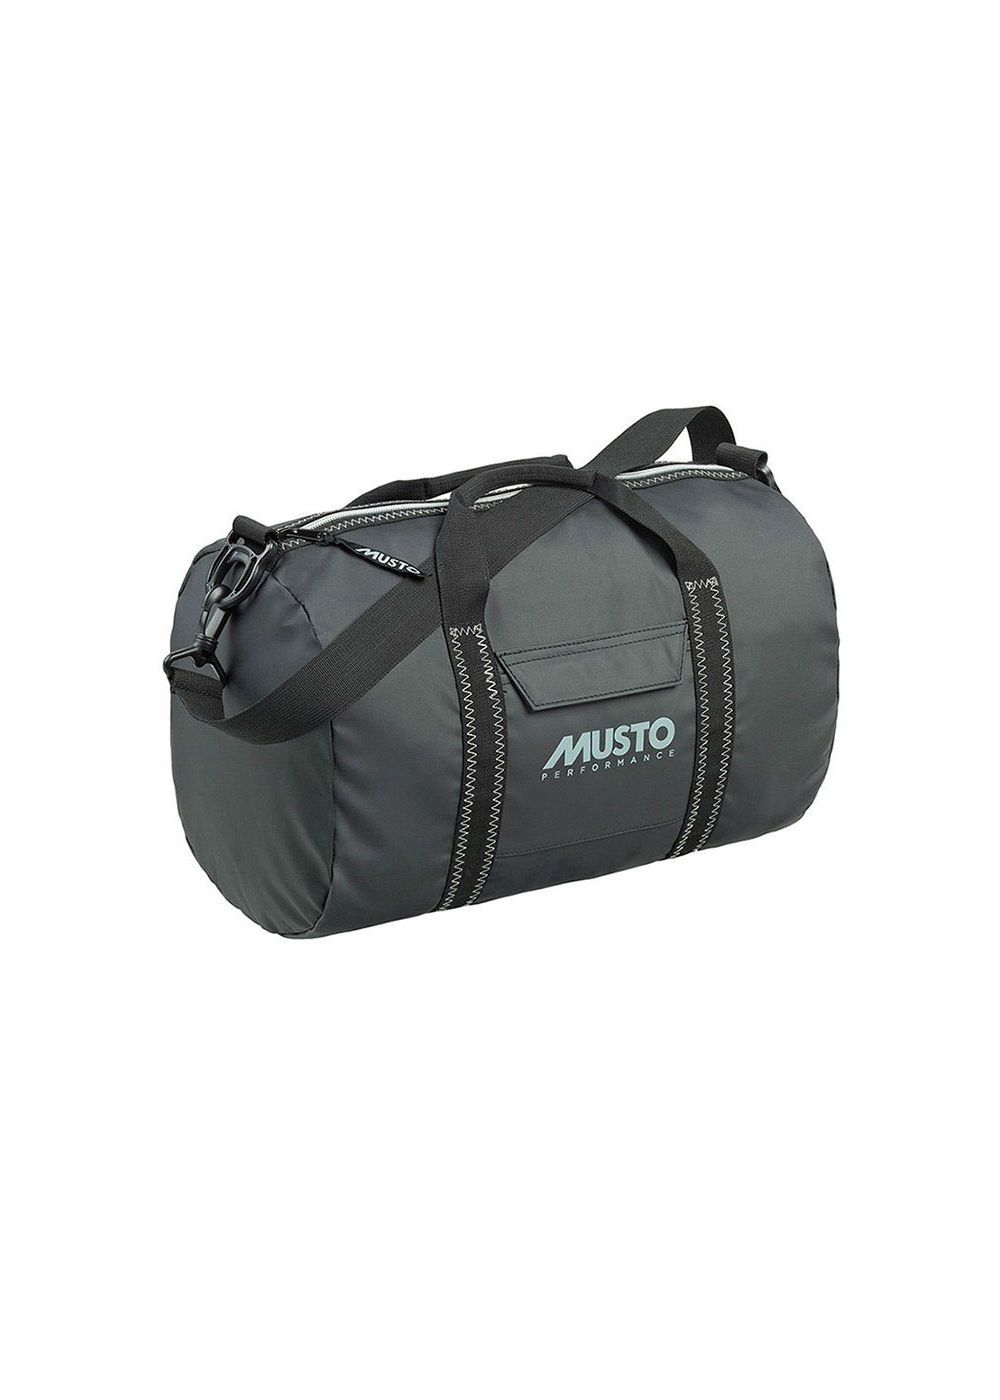 Musto Genoa Carry All Small